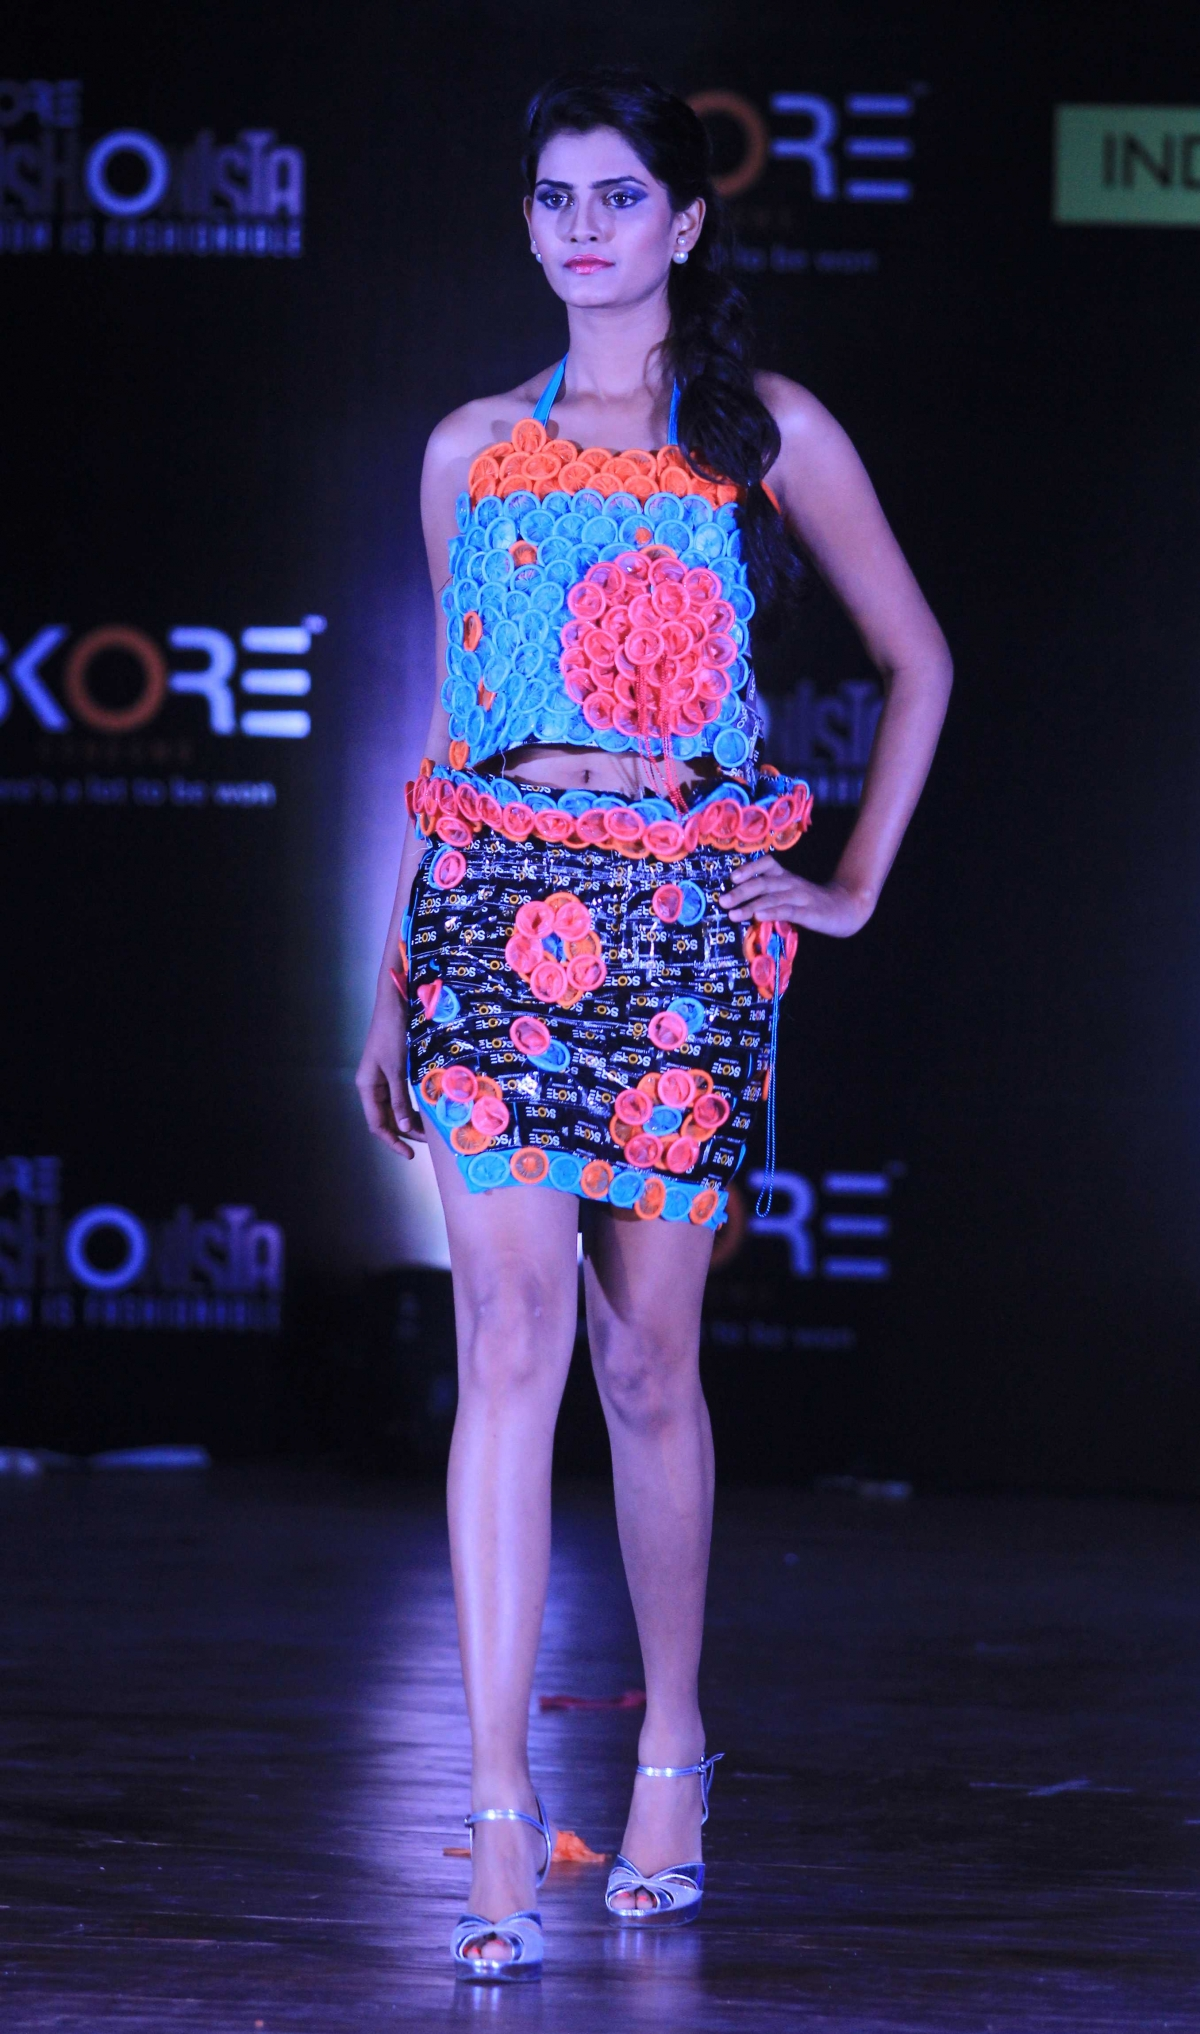 Indian College Girls Fashion Show Skore Condom Fashion Show